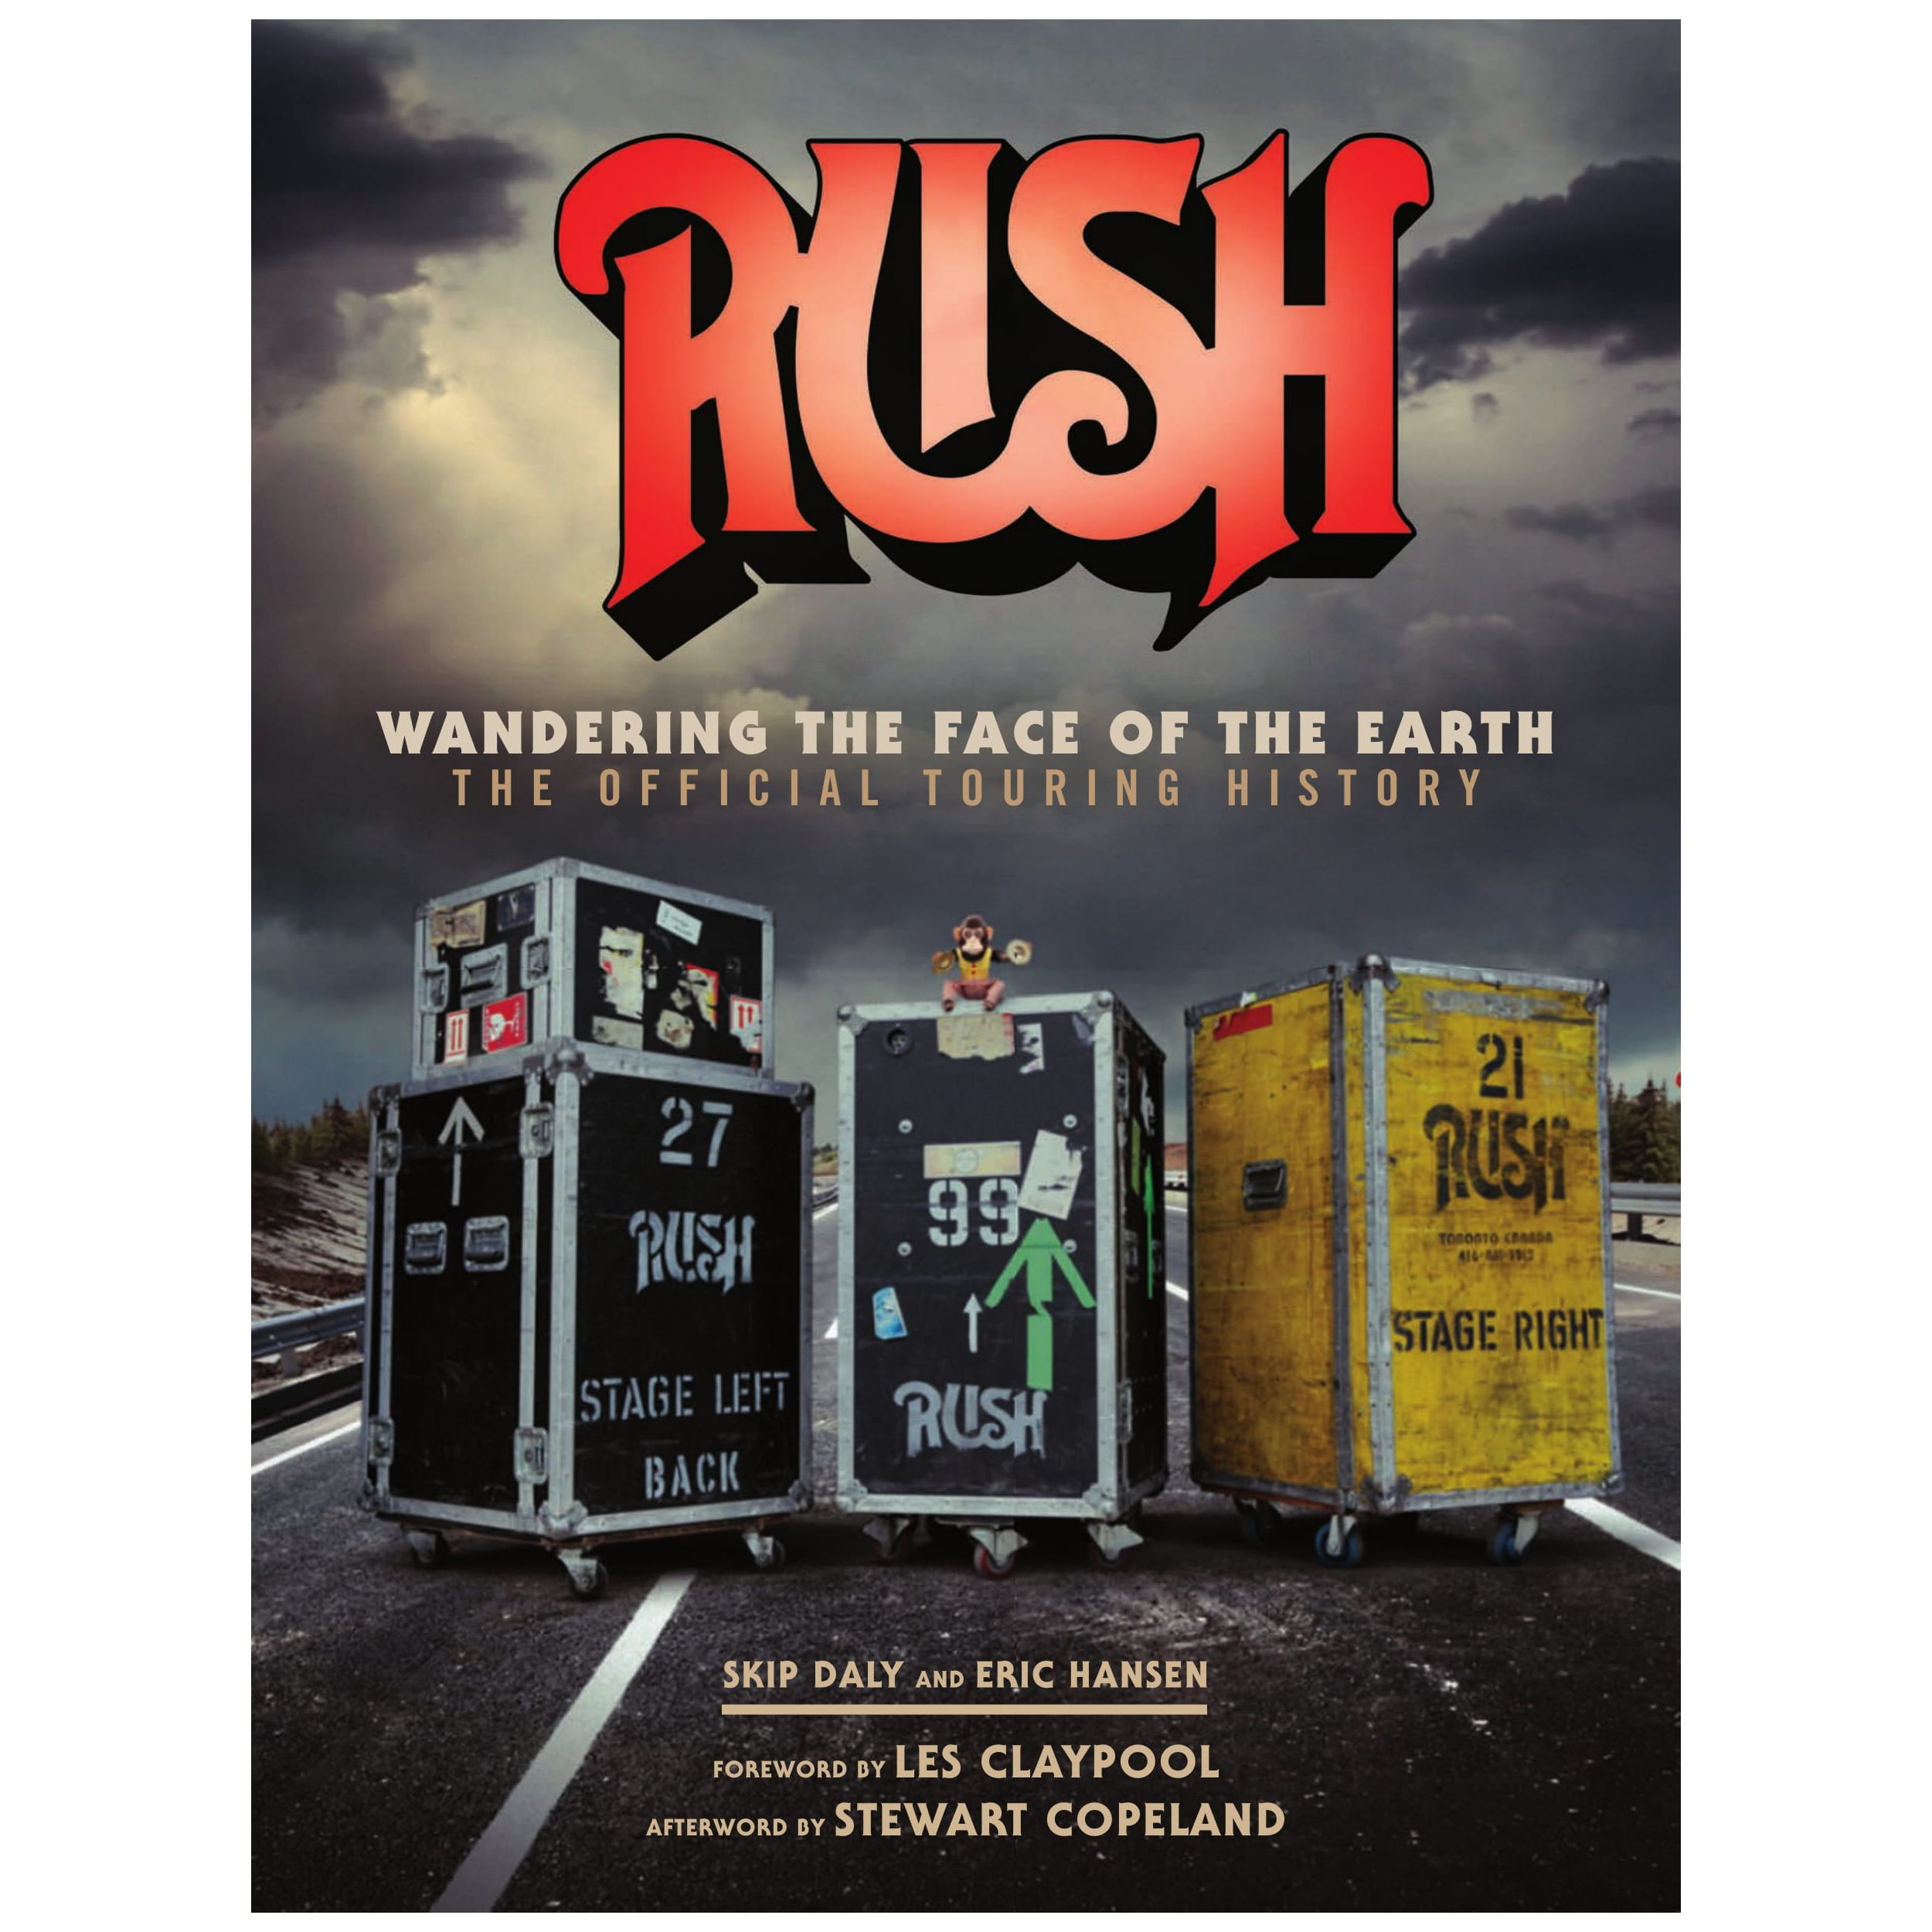 Rush: Wandering the Face of the Earth The Official Touring History